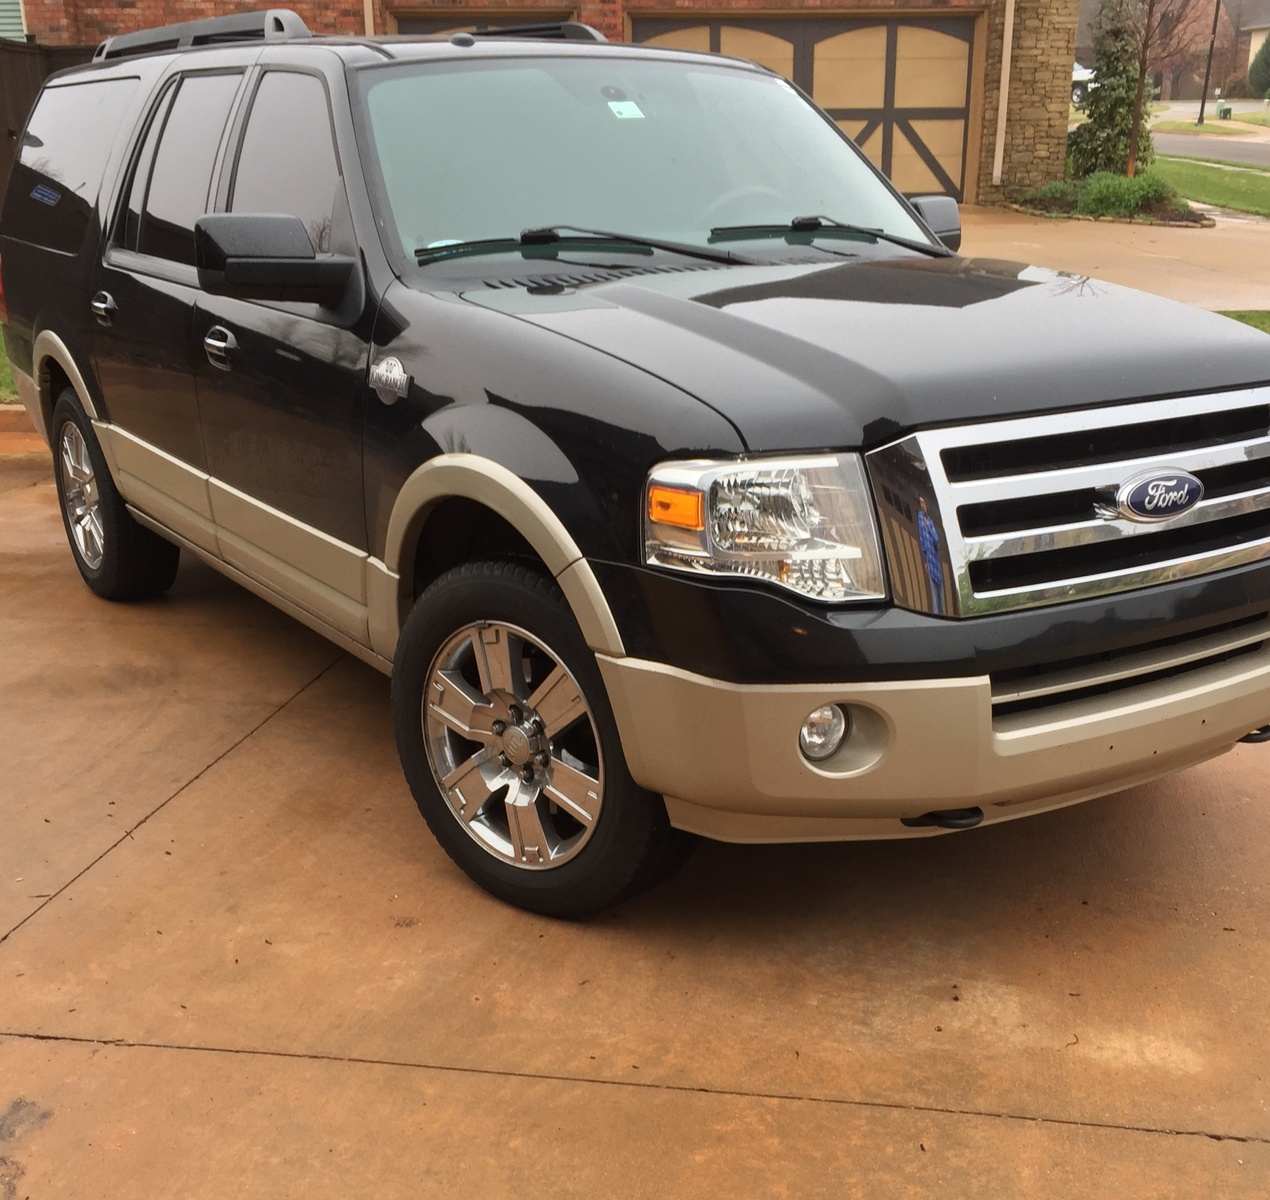 Ford Expediton: Ford Expedition Questions